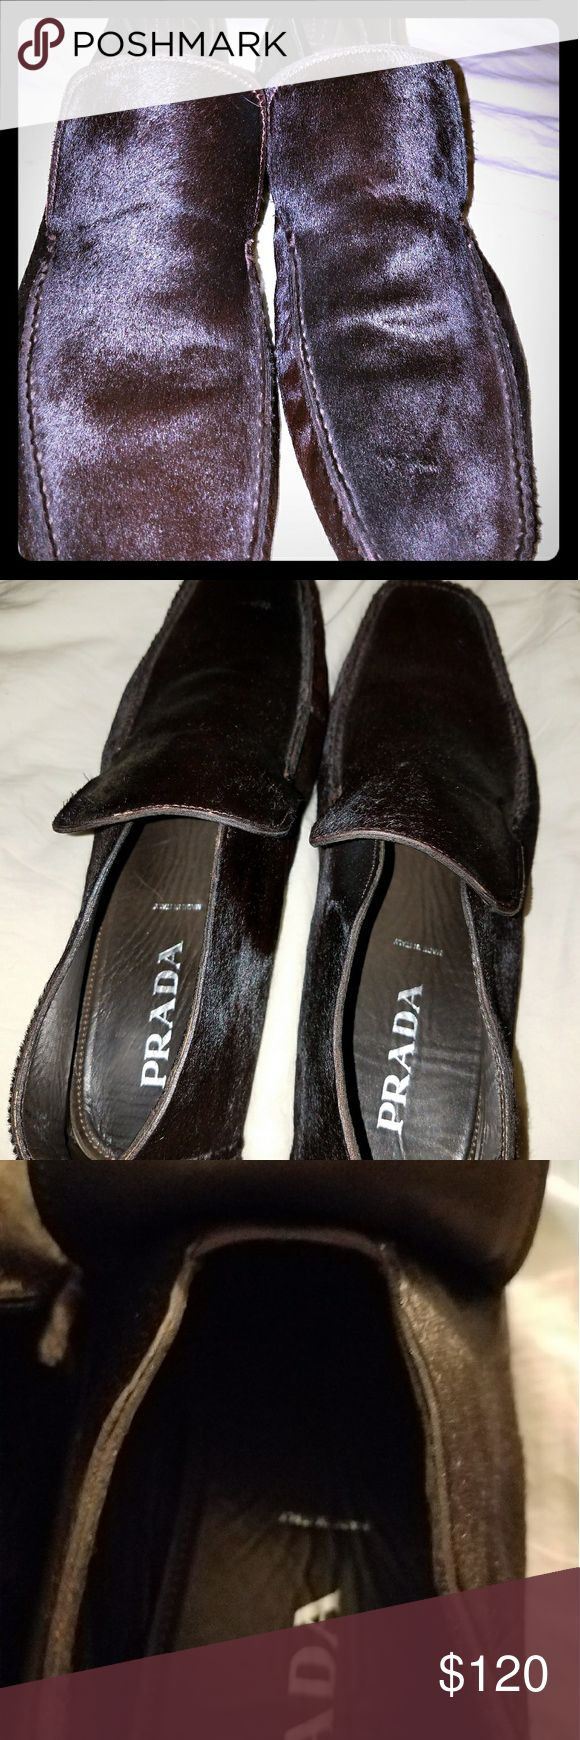 Men's PRADA Pony Fur Shoes Men's Black Prada Pony Fur Shoes, originally purchased and made in Italy. Never worn. Originally paid $500. Perfect condition. Well made sleek shoes that can be dressed up or down. Size 13, however they are more on the narrow side. Prada Shoes Loafers & Slip-Ons